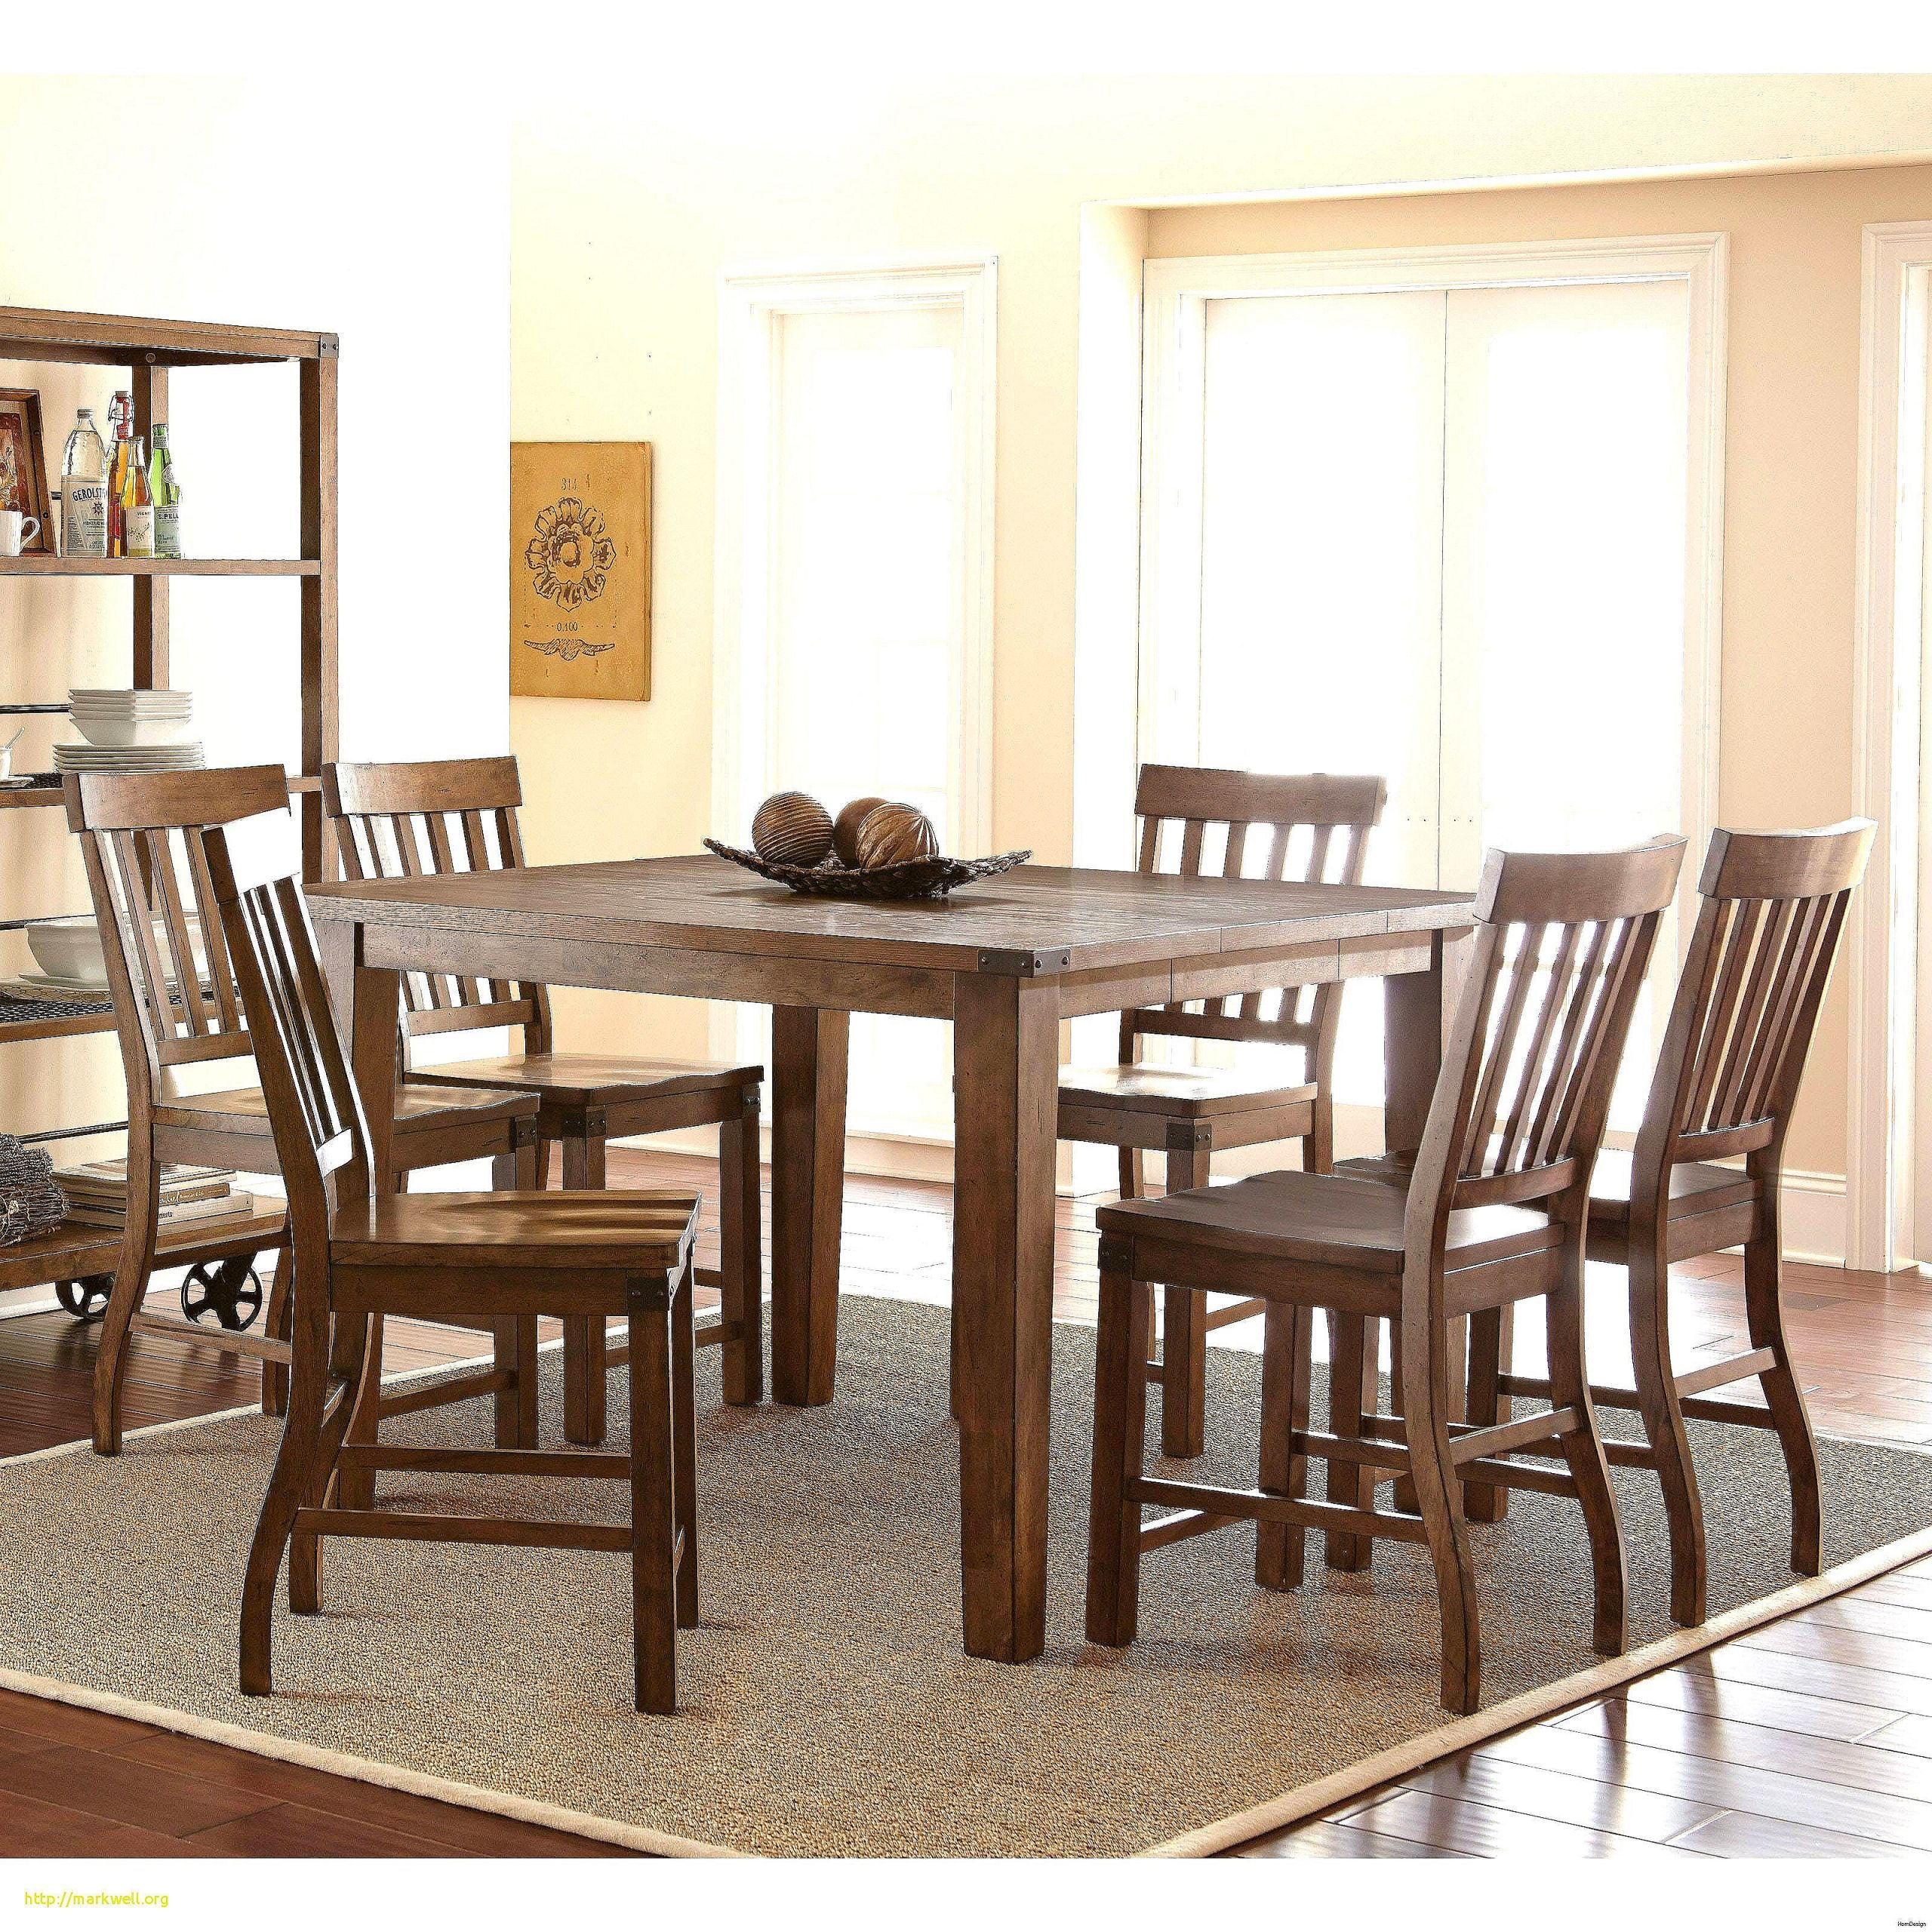 New Dining Room Table Walmart In 2020 Brown Dining Room Living Room Table Sets Luxury Dining Room Tables